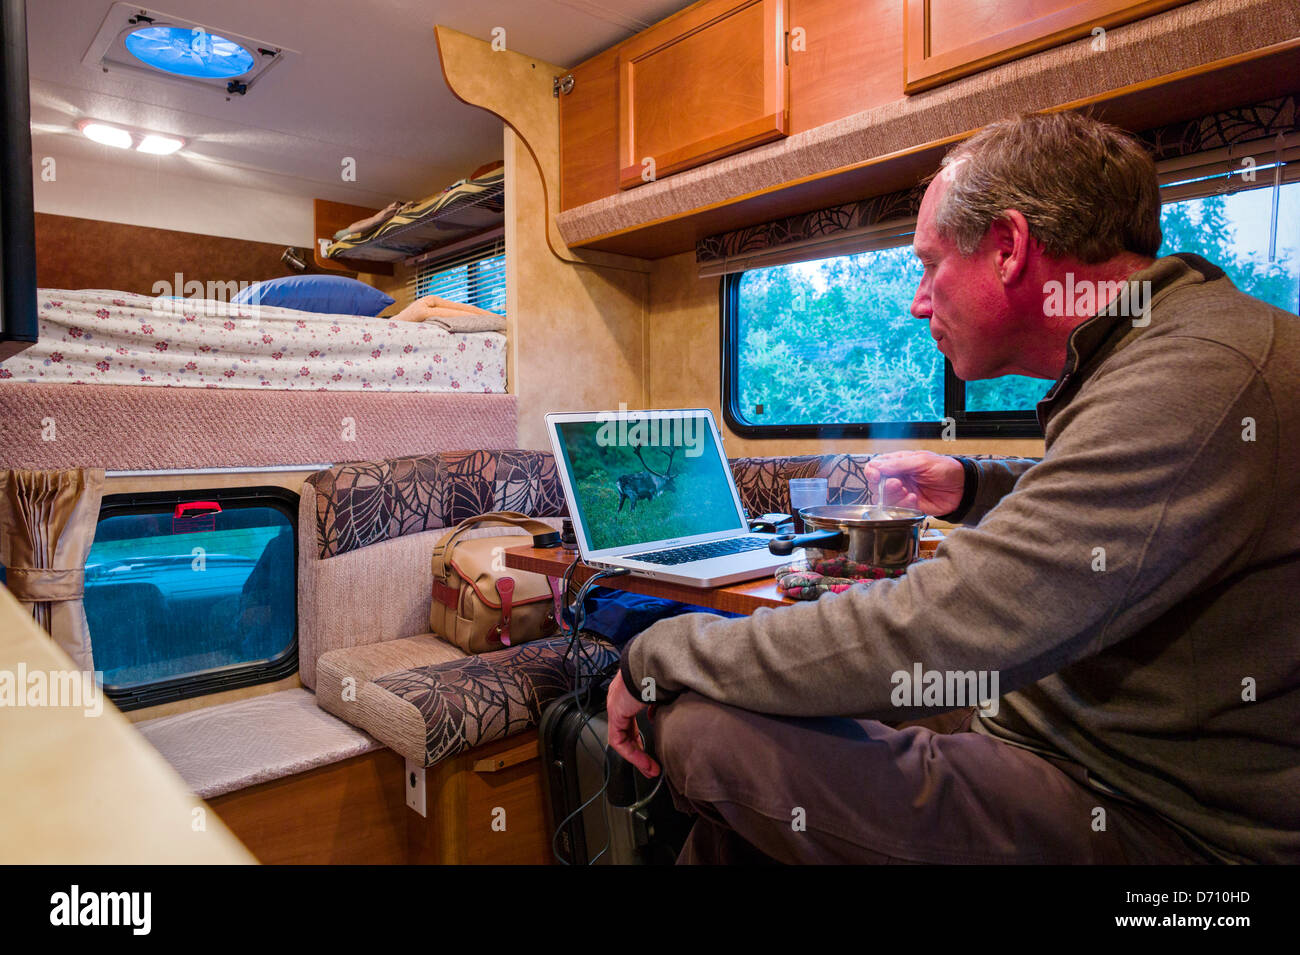 Professional photographer editing digital photographs on laptop computer inside a camper truck, Denali National - Stock Image